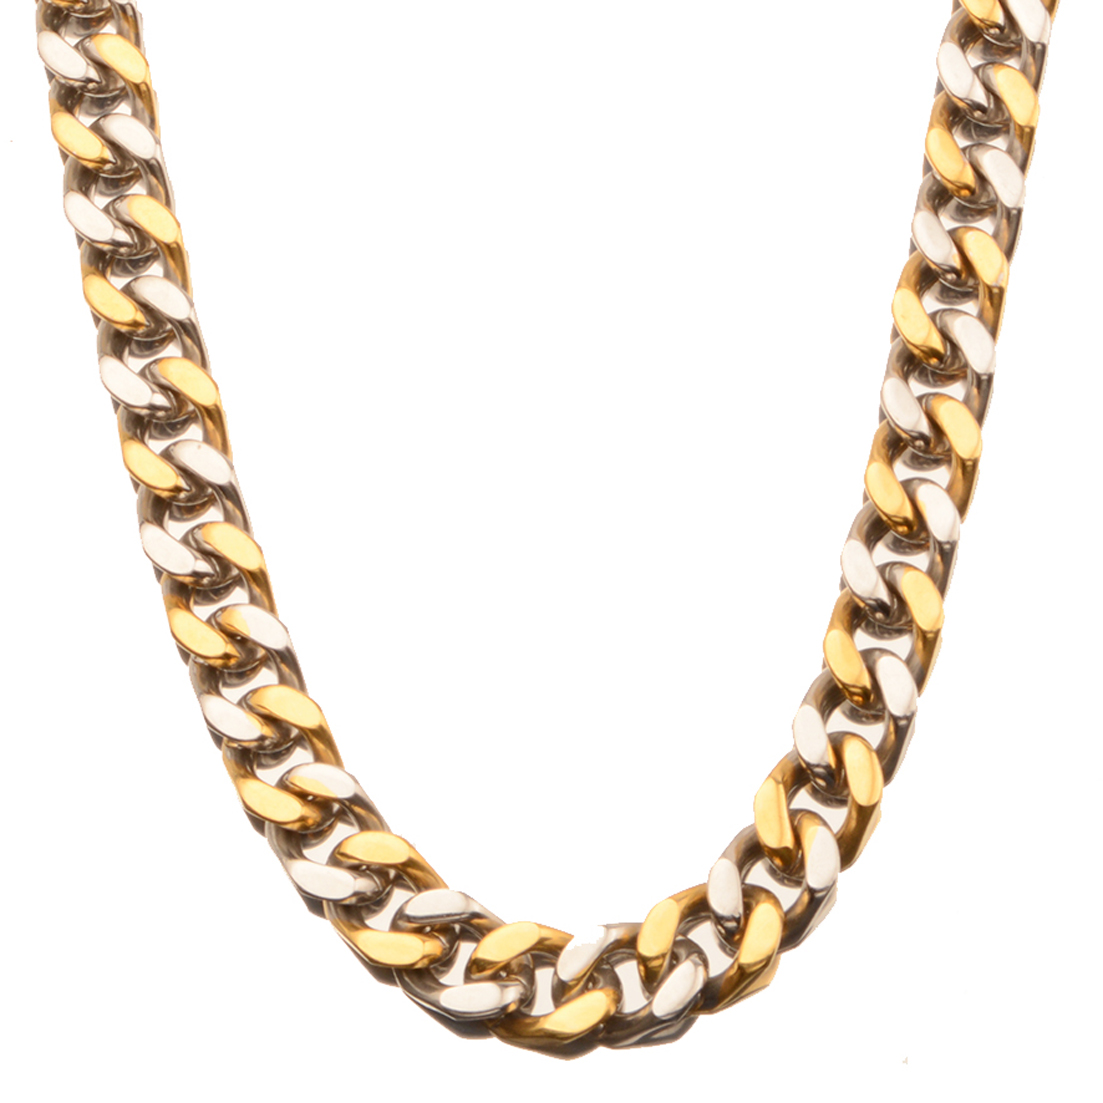 Hot Sale Mens Fashion Jewelry 9 11 13 15 MM 7 32 Inch Stainless Steel Silver Gold Curb Cuban Chain Necklace Charm Jewelry in Chain Necklaces from Jewelry Accessories